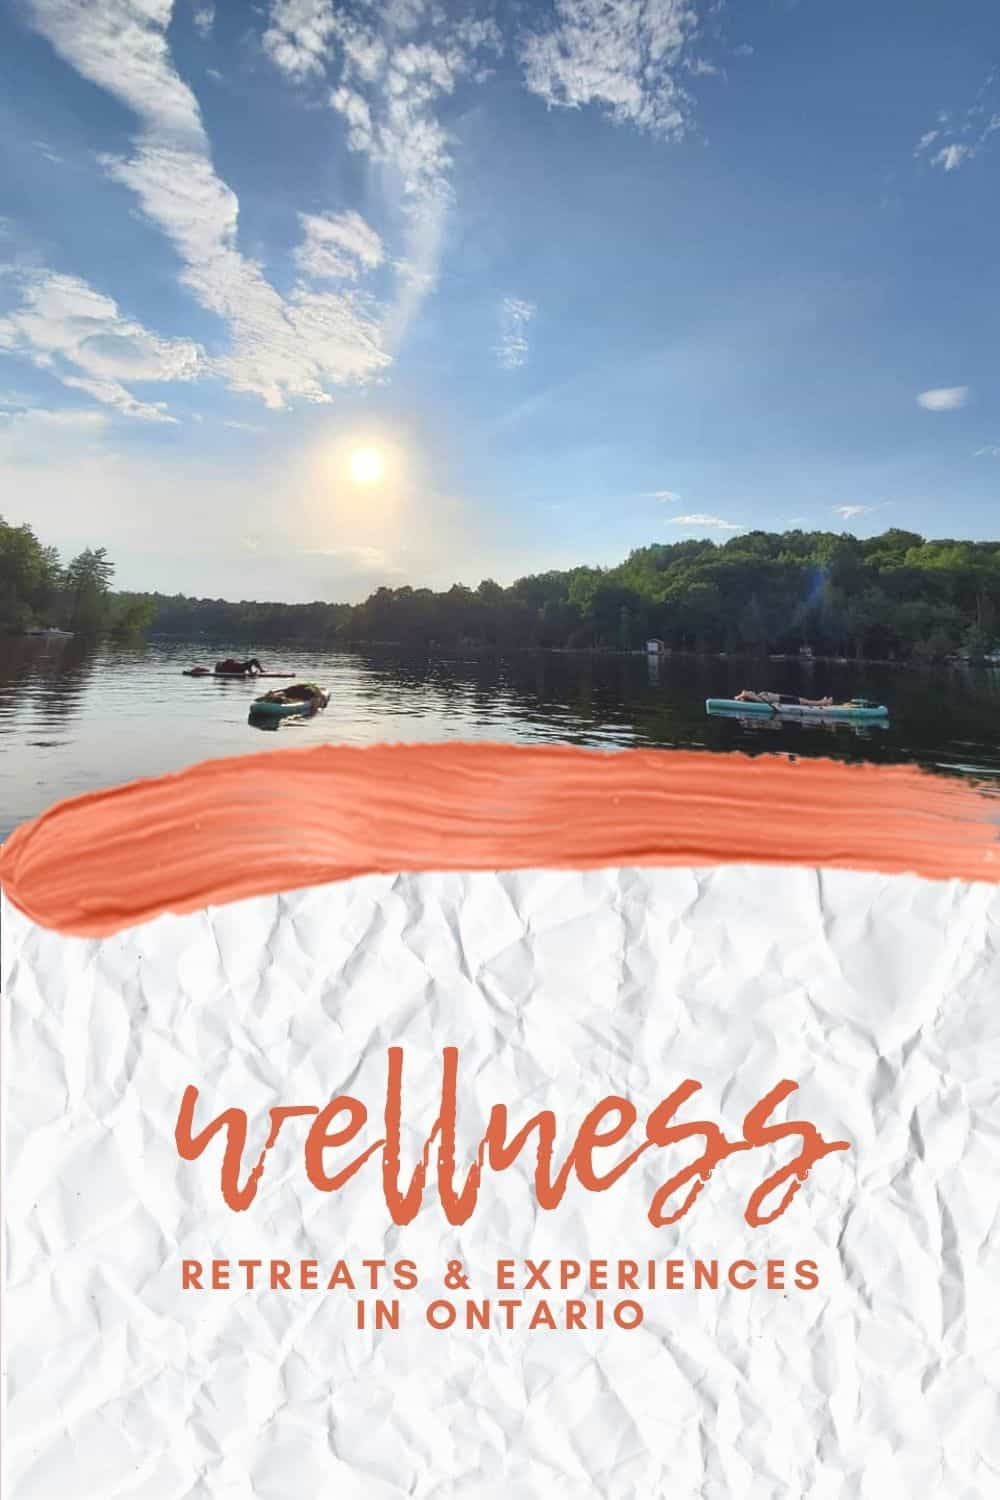 Outdoor Wellness Retreats in Ontario - experiences to help you detox and relax